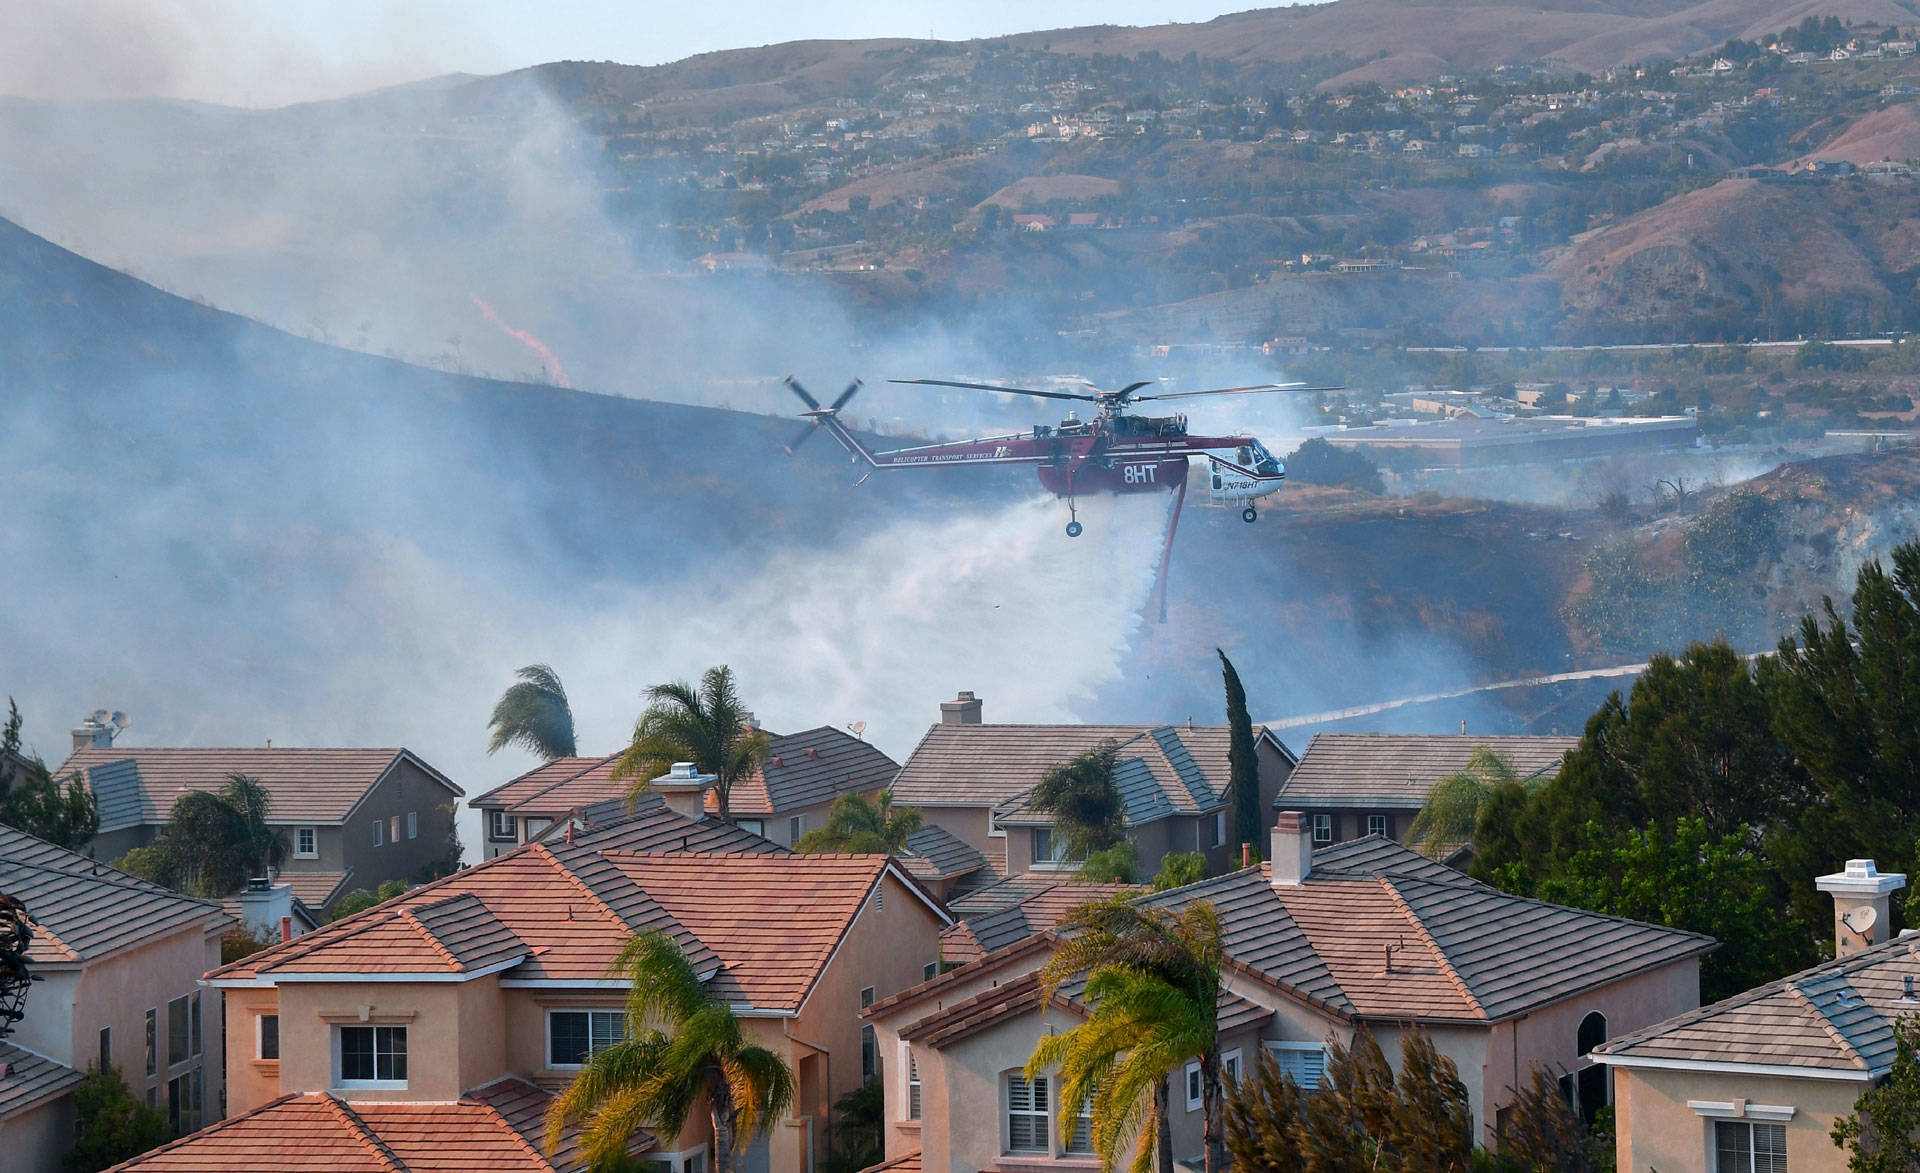 A helicopter drops water near homes in the Anaheim Hills neighborhood on Oct. 9, 2017. Orange County experienced rapid growth in housing construction in fire-prone areas between 1990 and 2010. FREDERIC J. BROWN/AFP/Getty Images